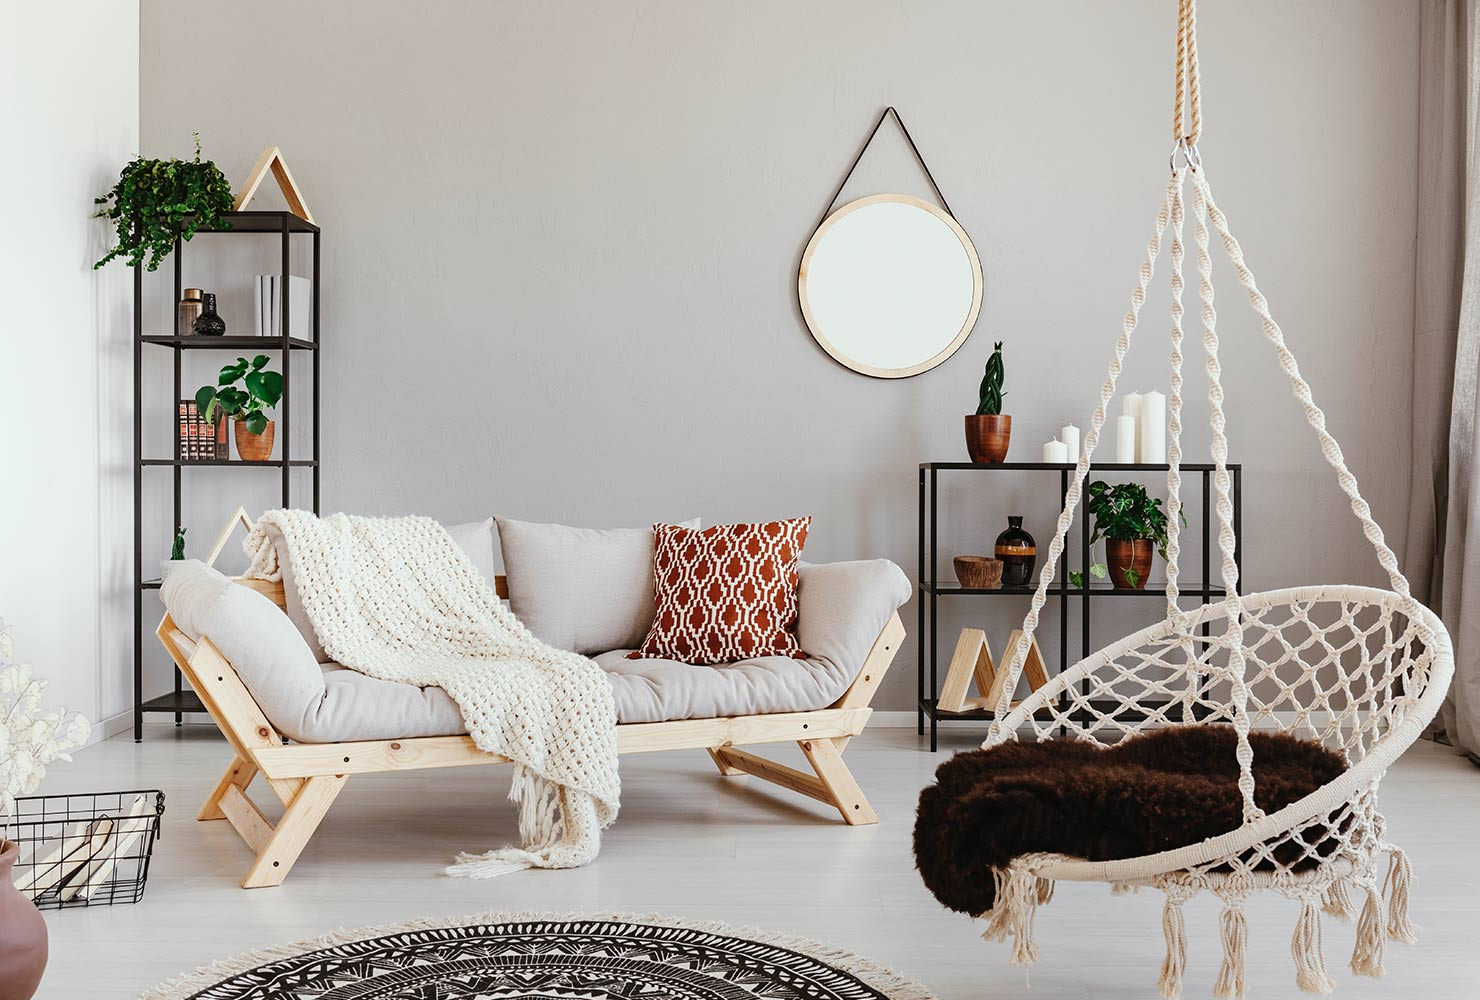 Bohemian living room decor with hanging swing.